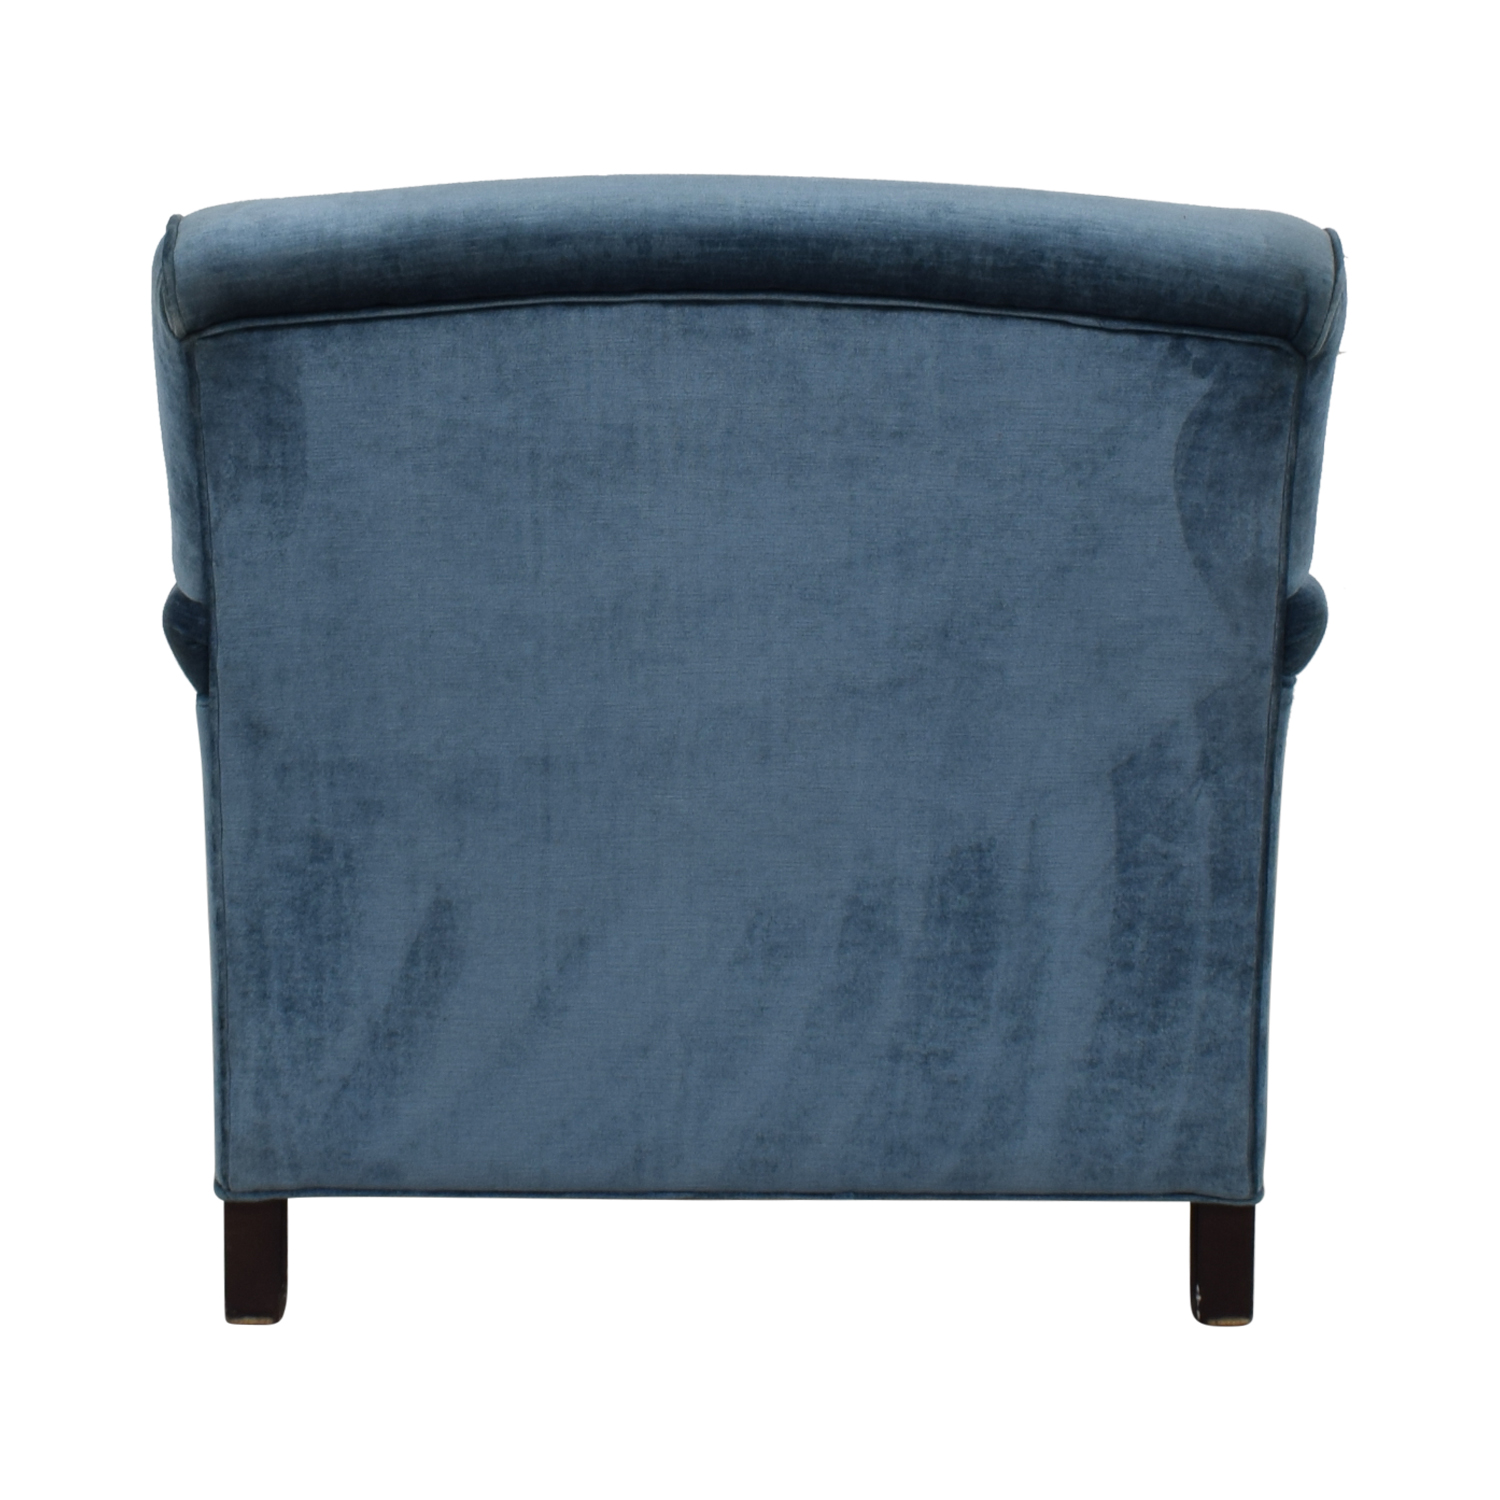 Mitchell Gold + Bob Williams Mitchell Gold + Bob Williams Blue Velvet Chaise Lounge on Castors